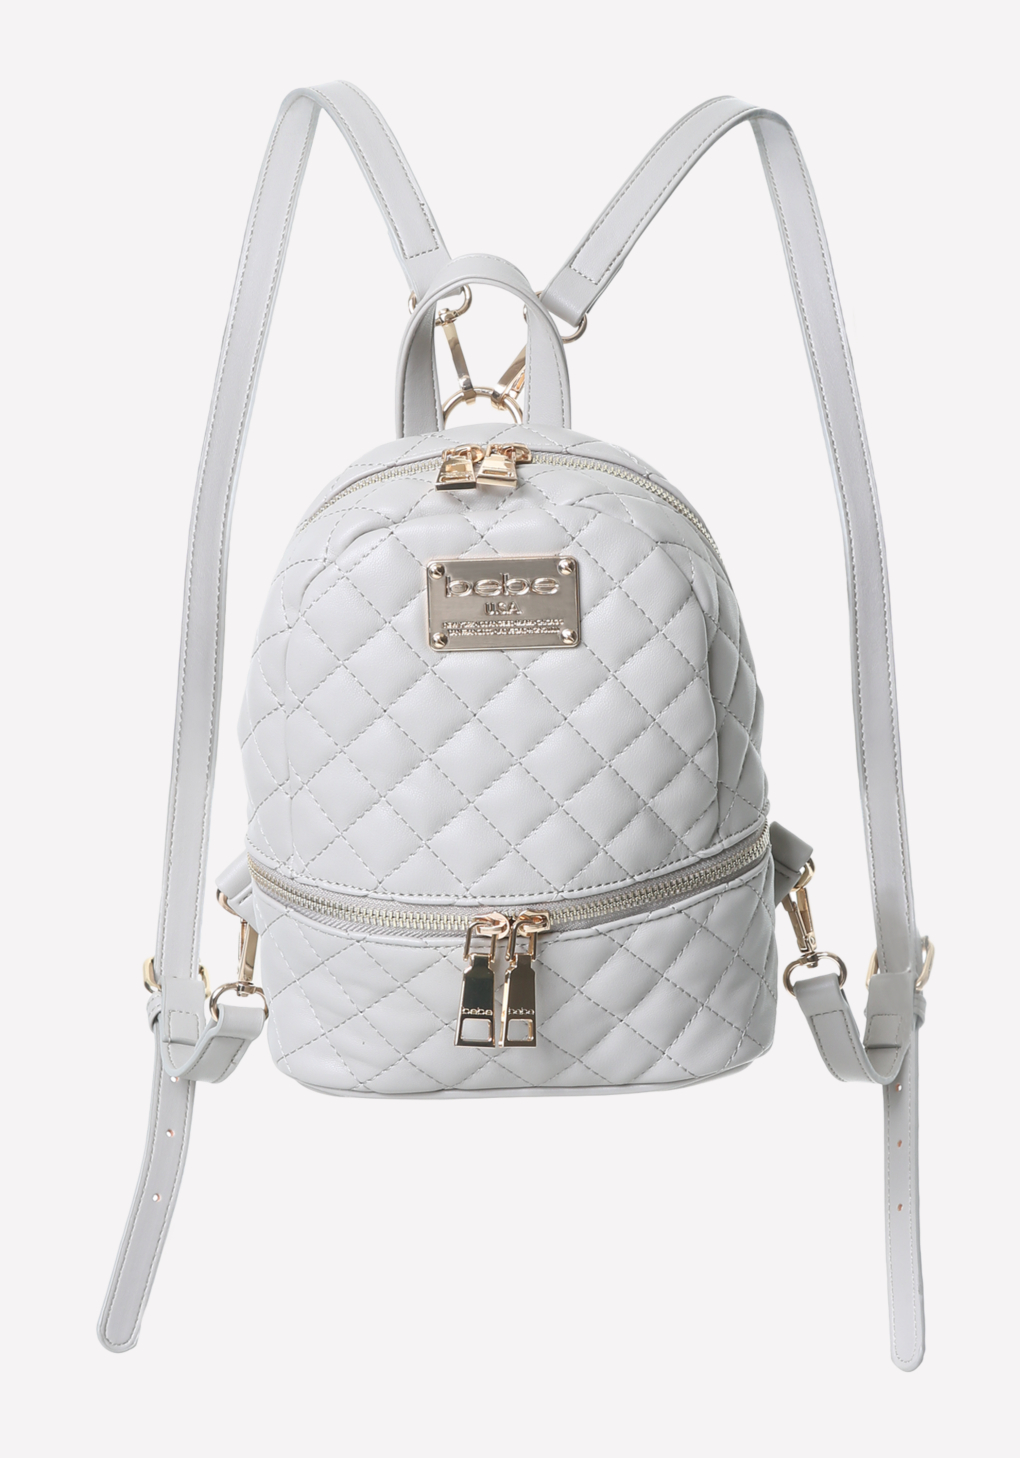 Lyst - Bebe Quilted Mini Backpack in Gray e27e2f972debd